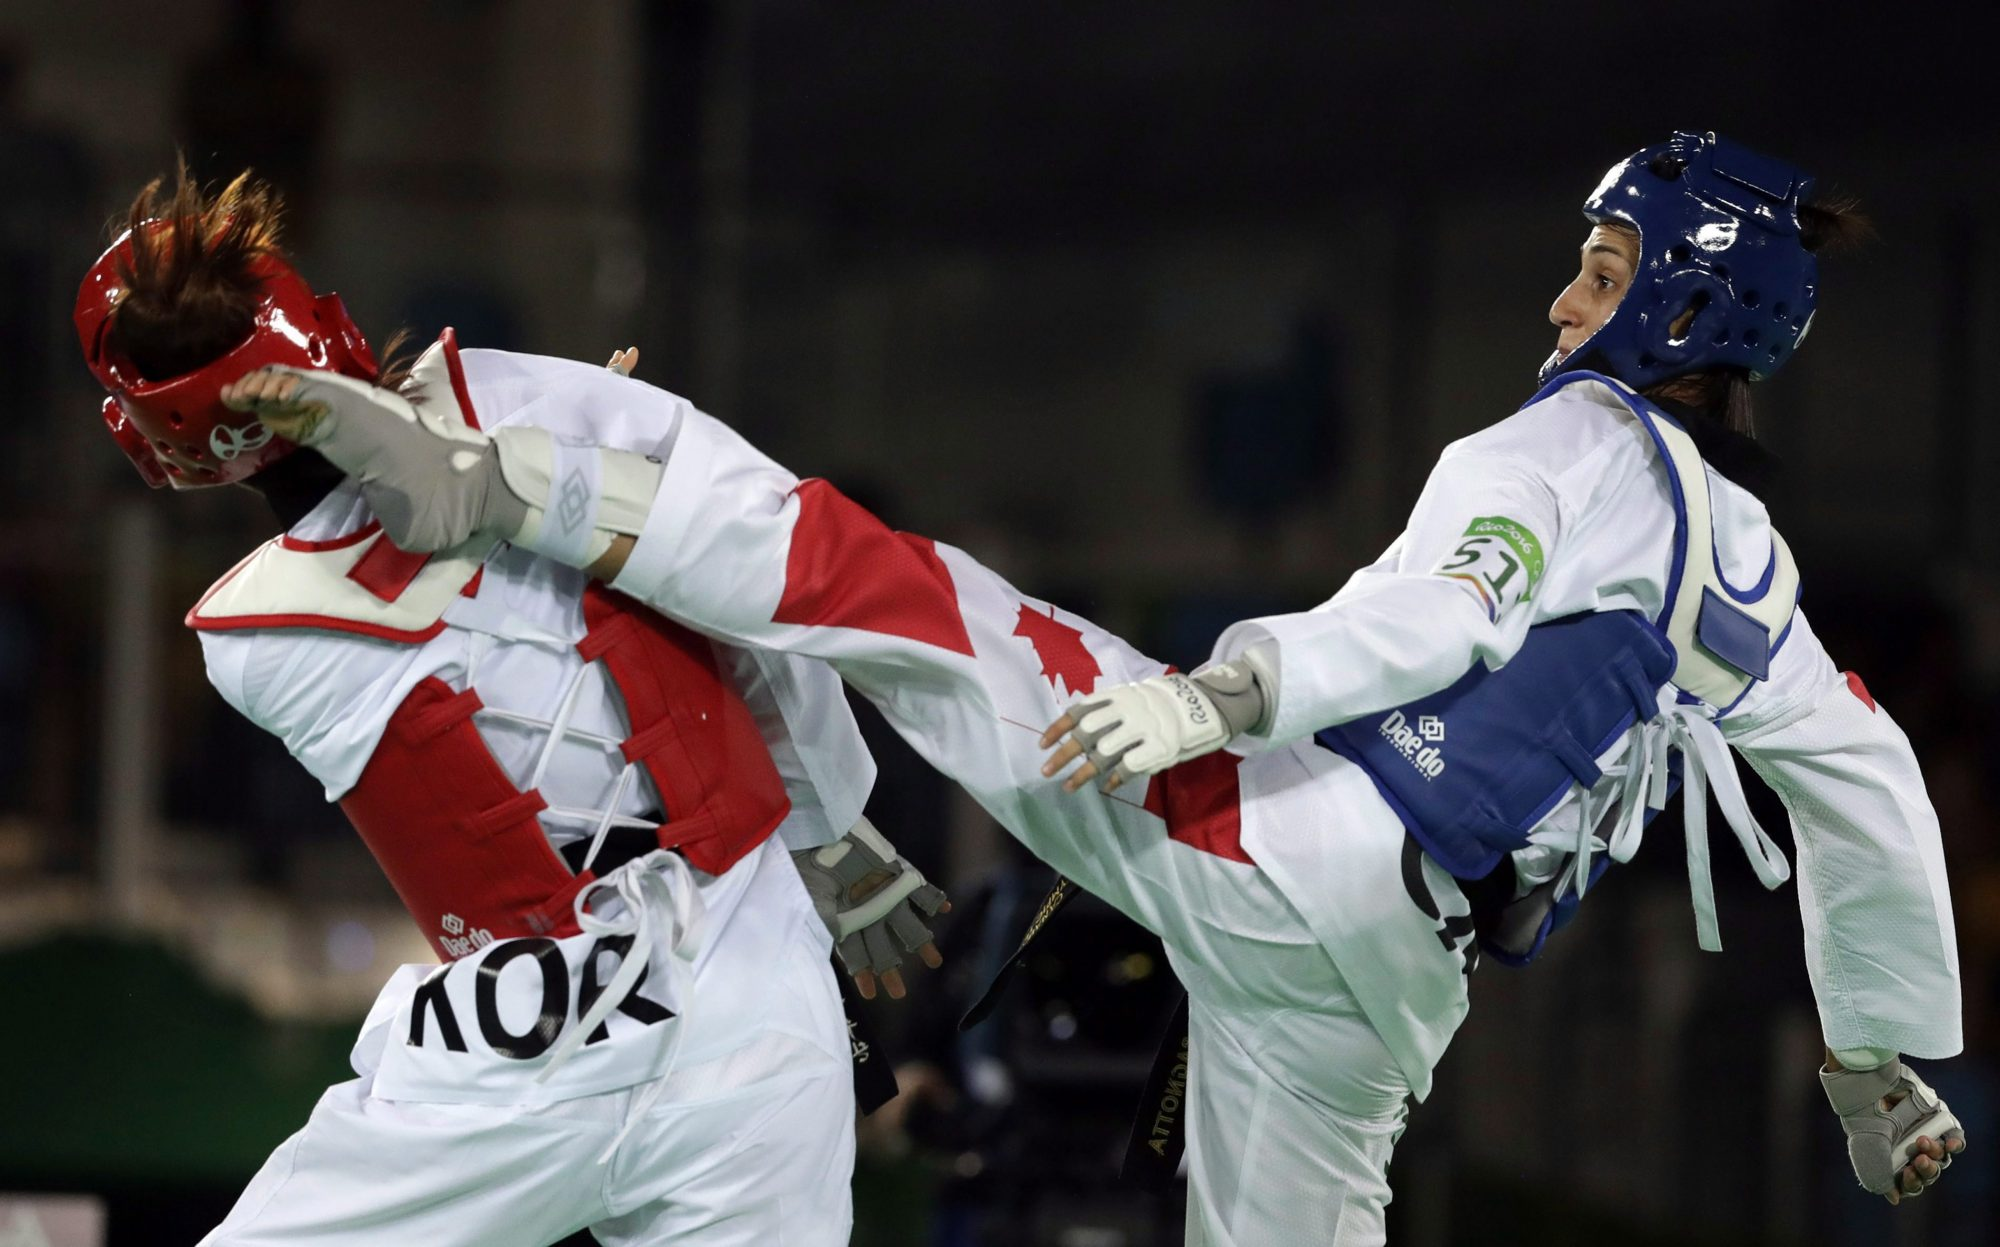 Melissa Pagnotta competes in taekwondo